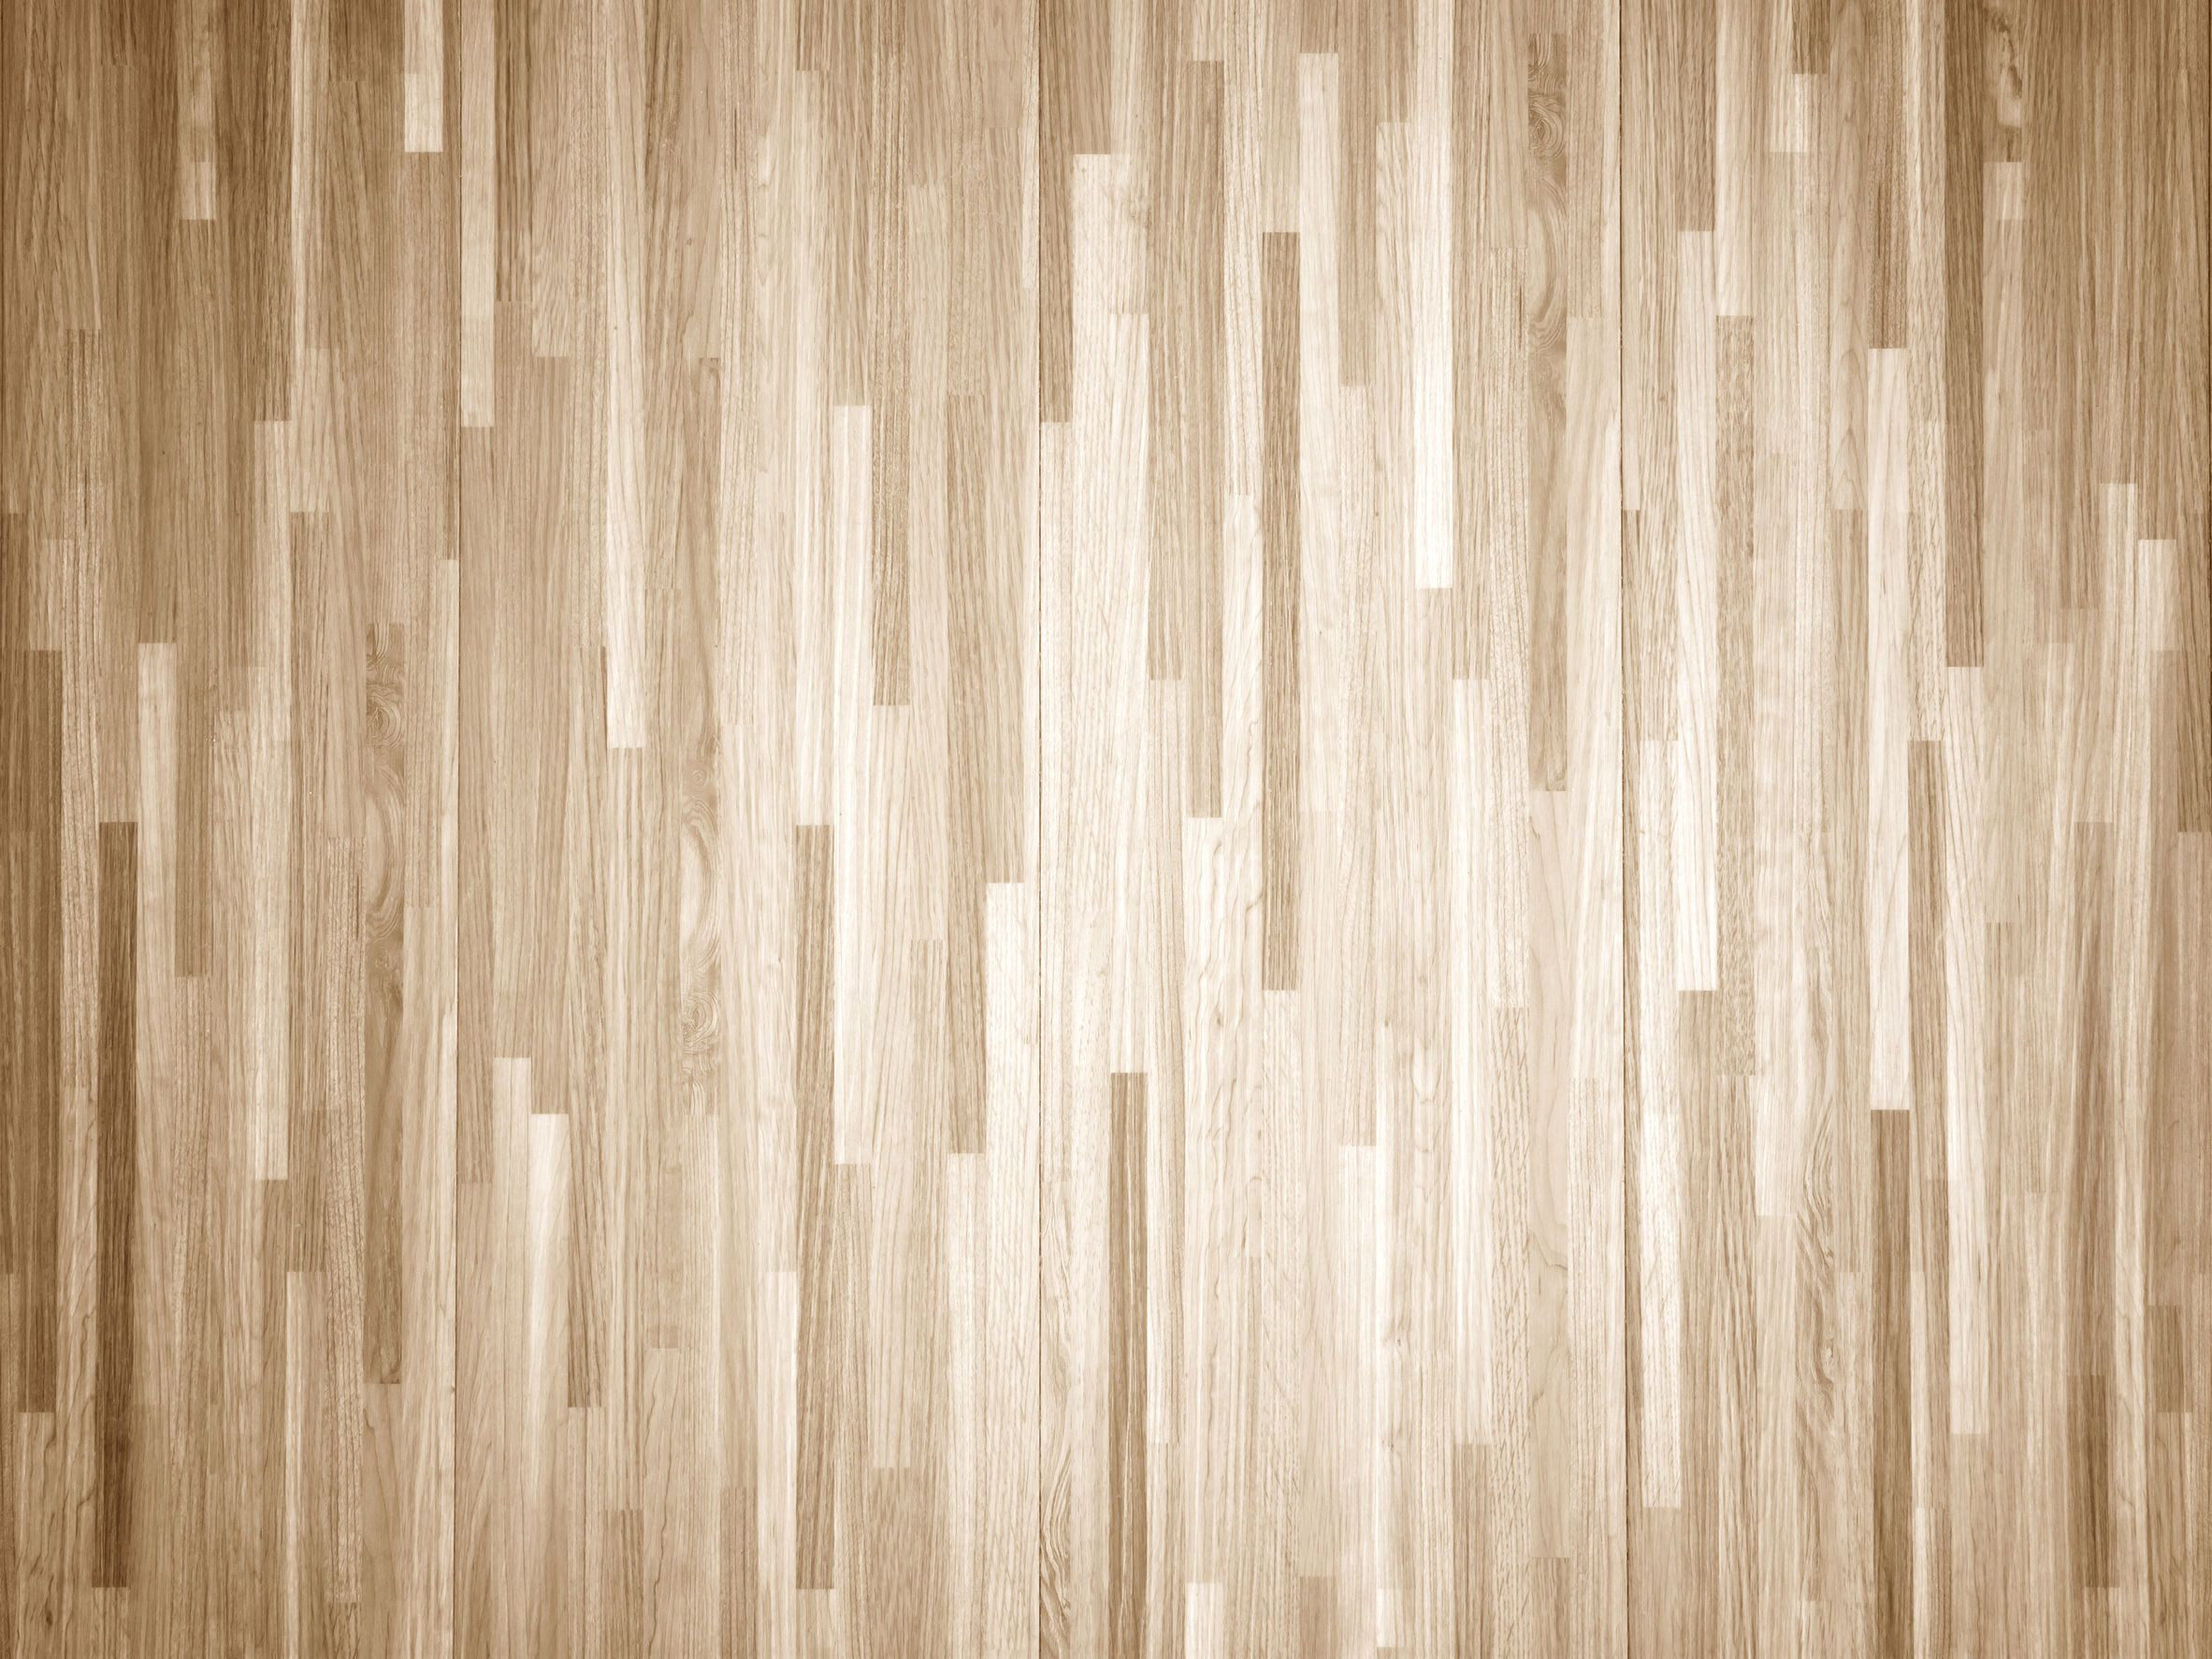 staining hardwood floors how long to dry of how to chemically strip wood floors woodfloordoctor com with regard to you